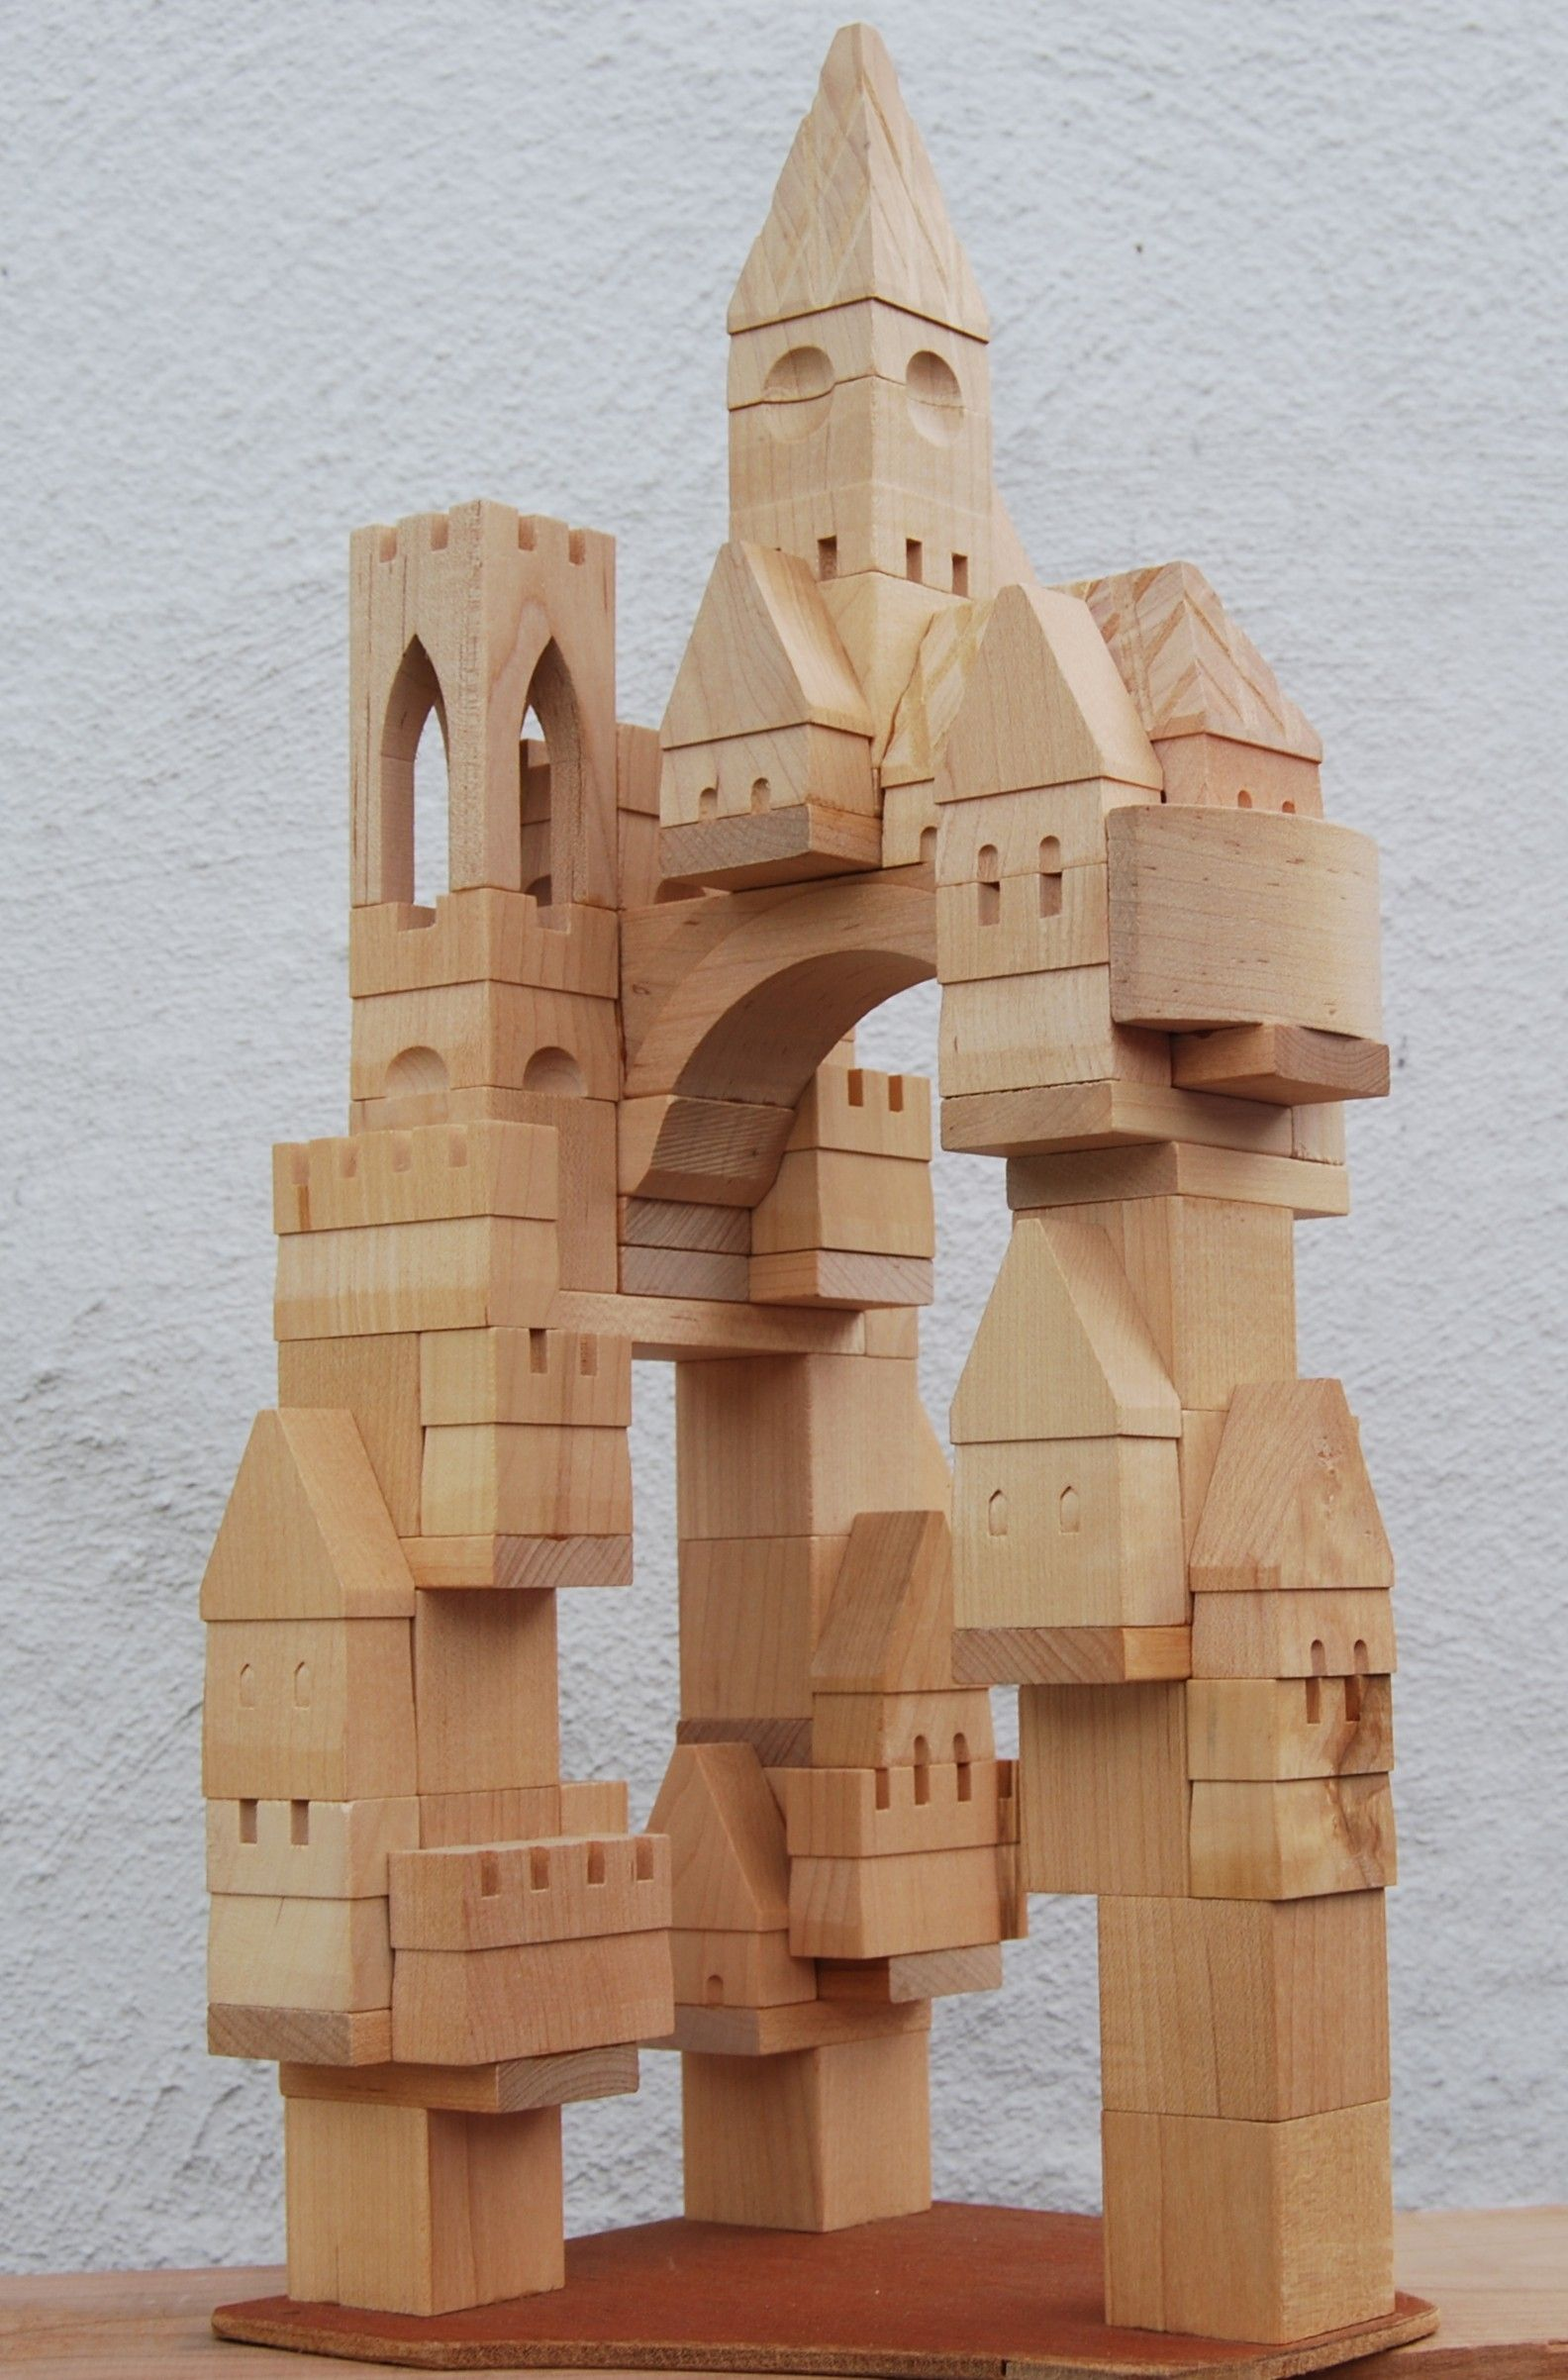 Wooden toys images  Handmade wooden toy Castle building blocks